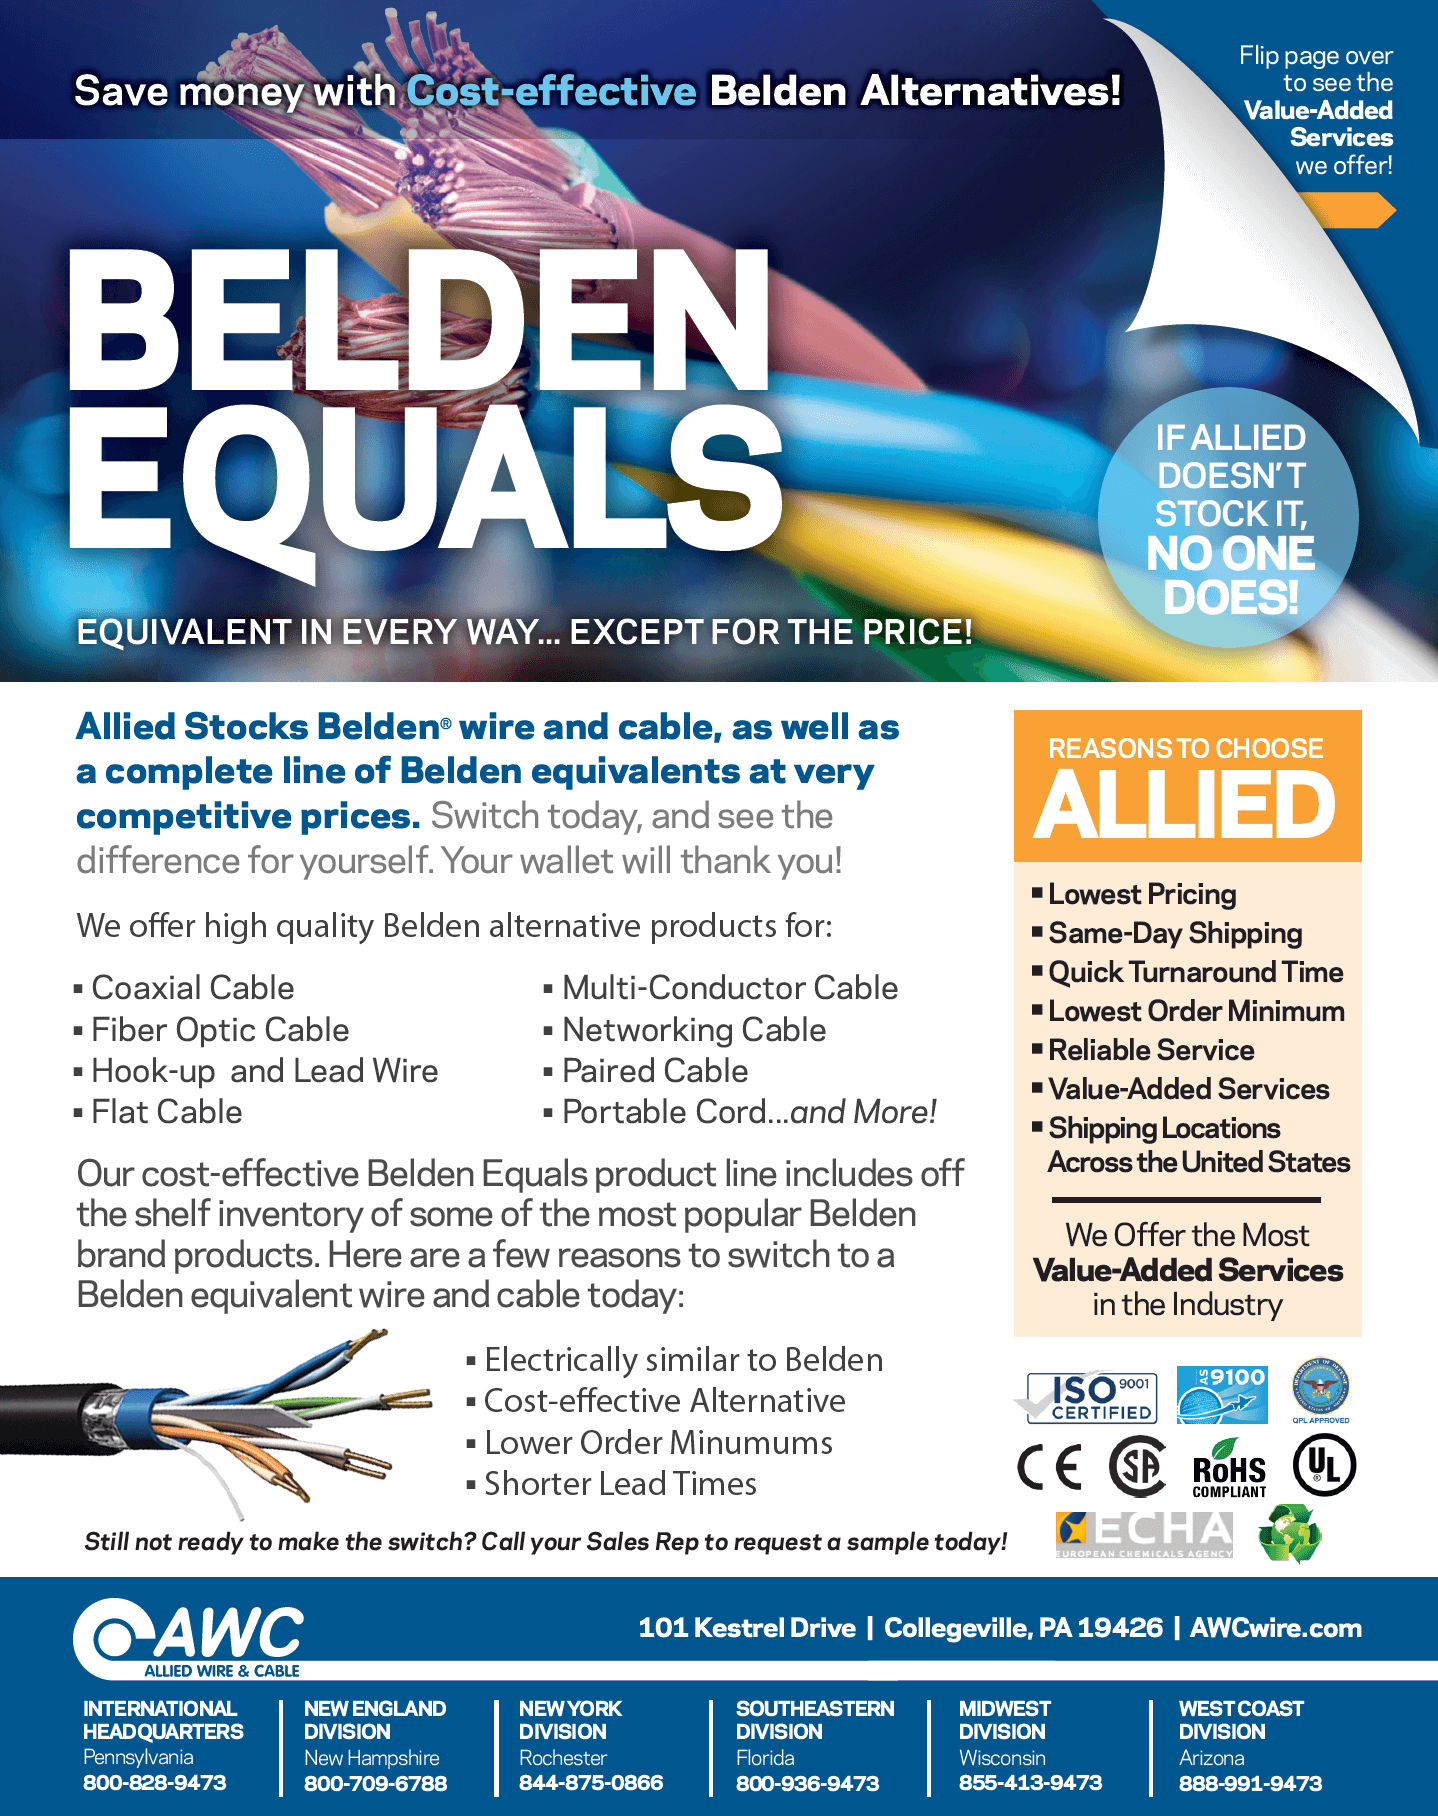 Belden equals Line Card from Allied Wire & Cable